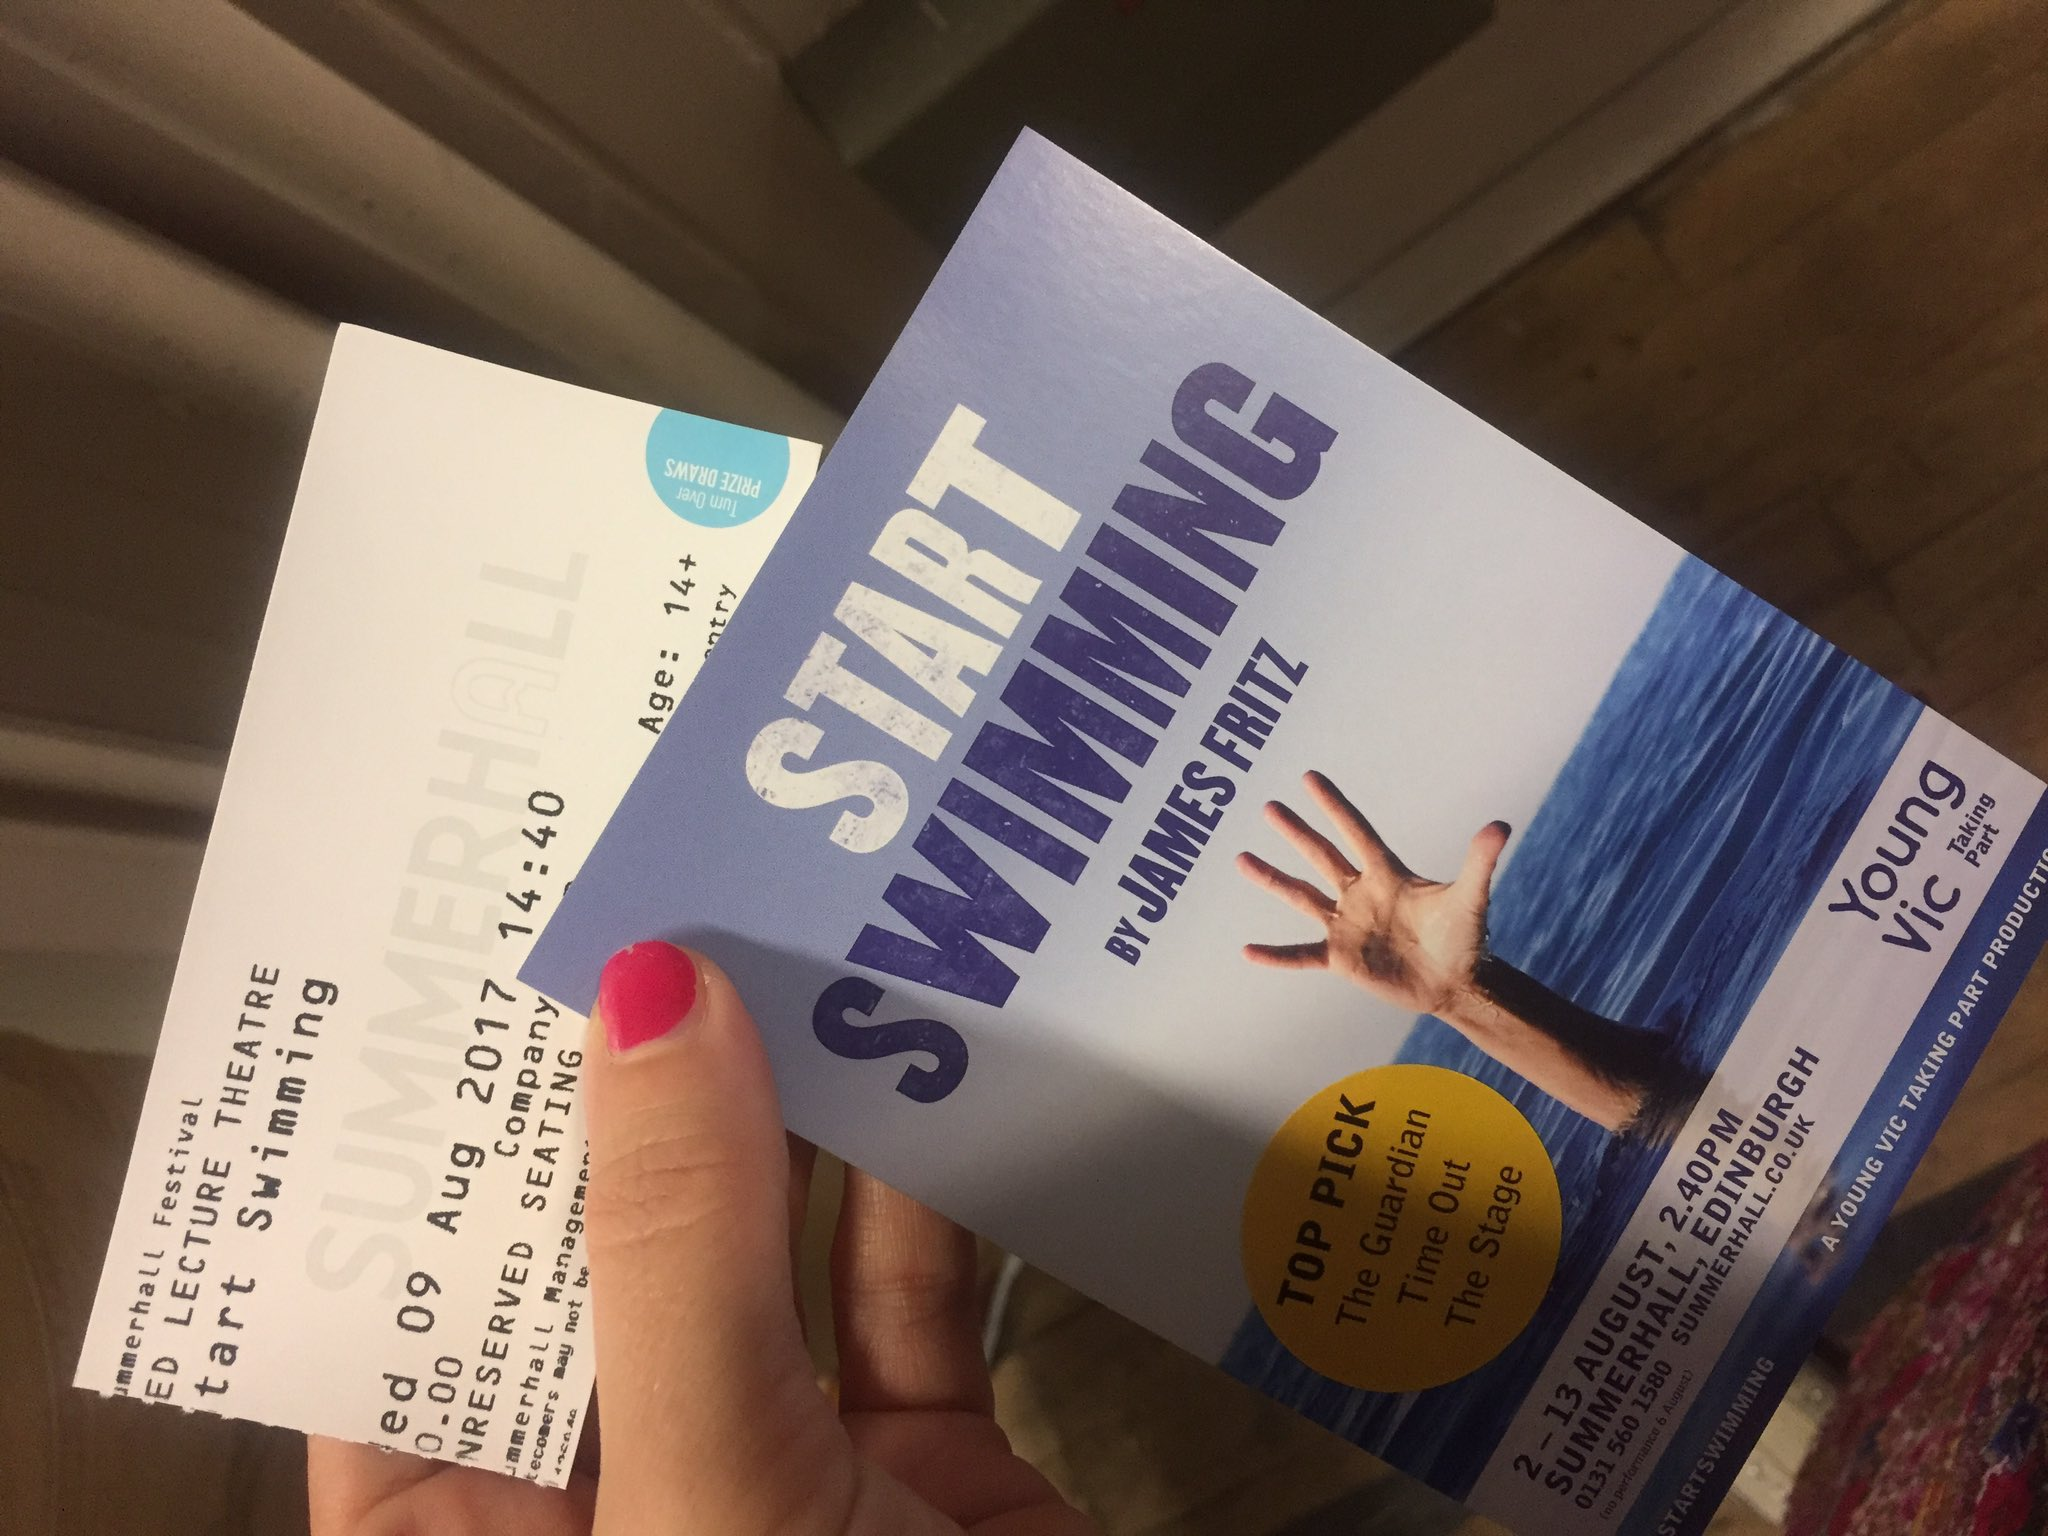 #startswimming #edfest2017 was ace!! Congrats @YVTakingPart . Keen to chat about the rehearsal process. #wypyouth @WYPlayhouse would 💜 it! https://t.co/uRbKePkPKp